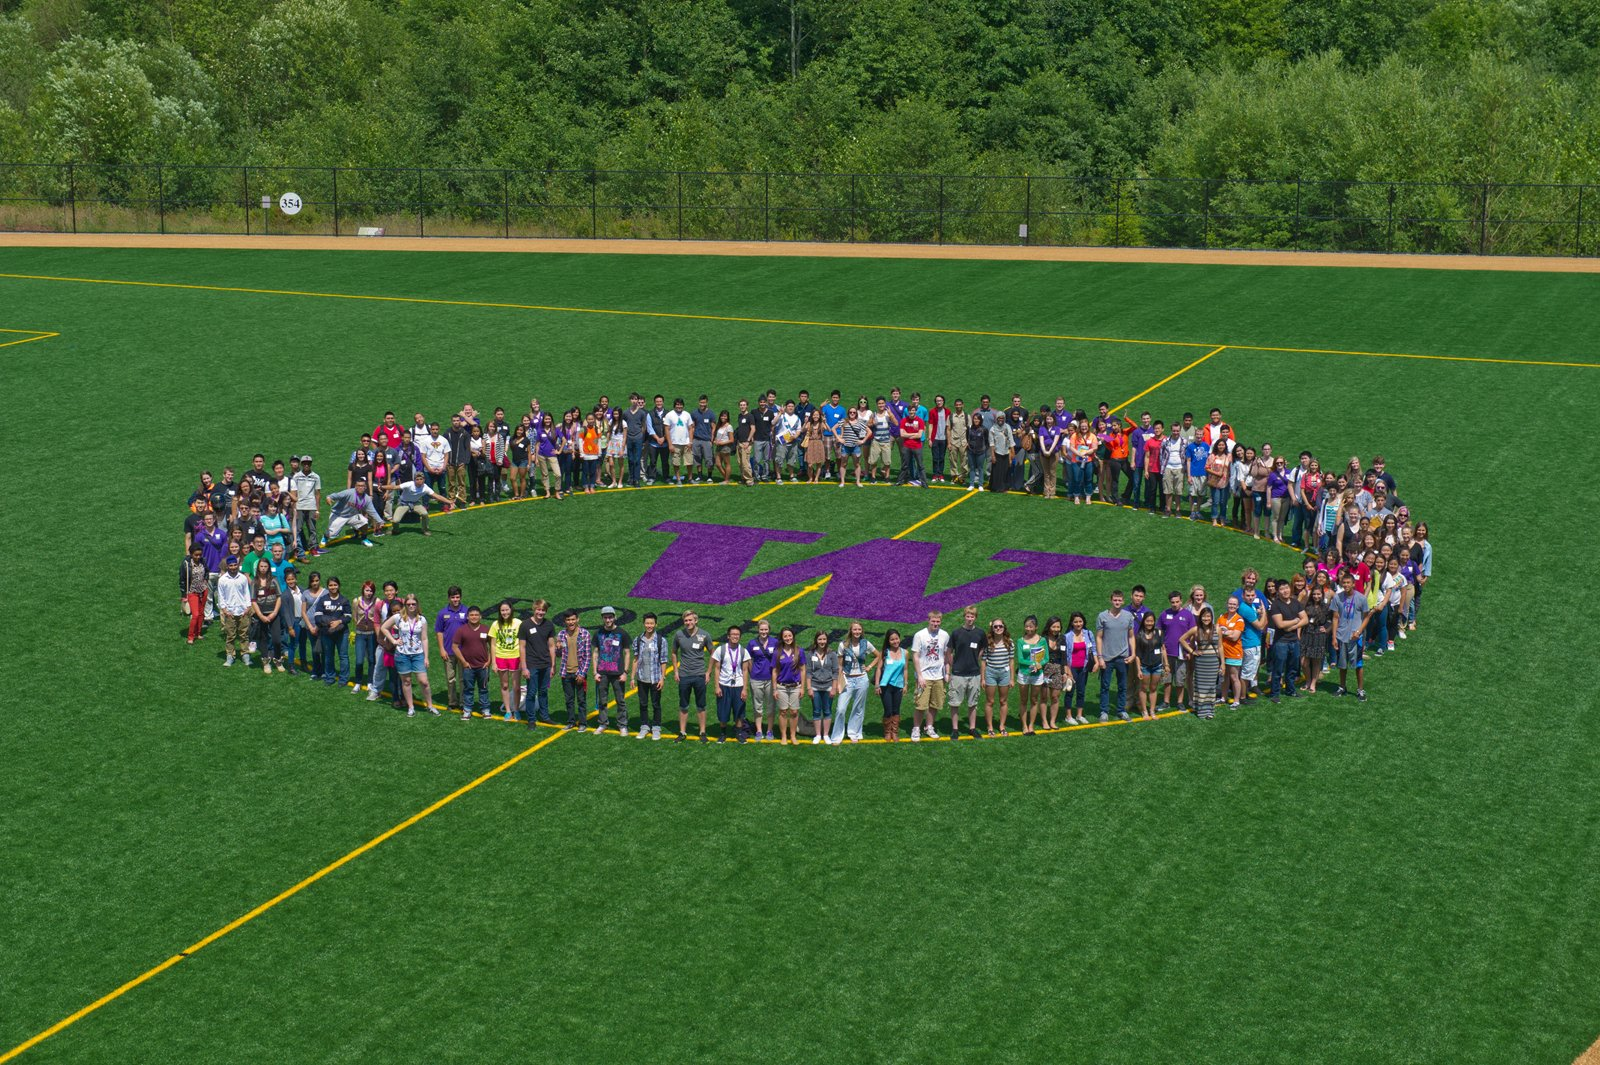 Group picture of students standing in a circle